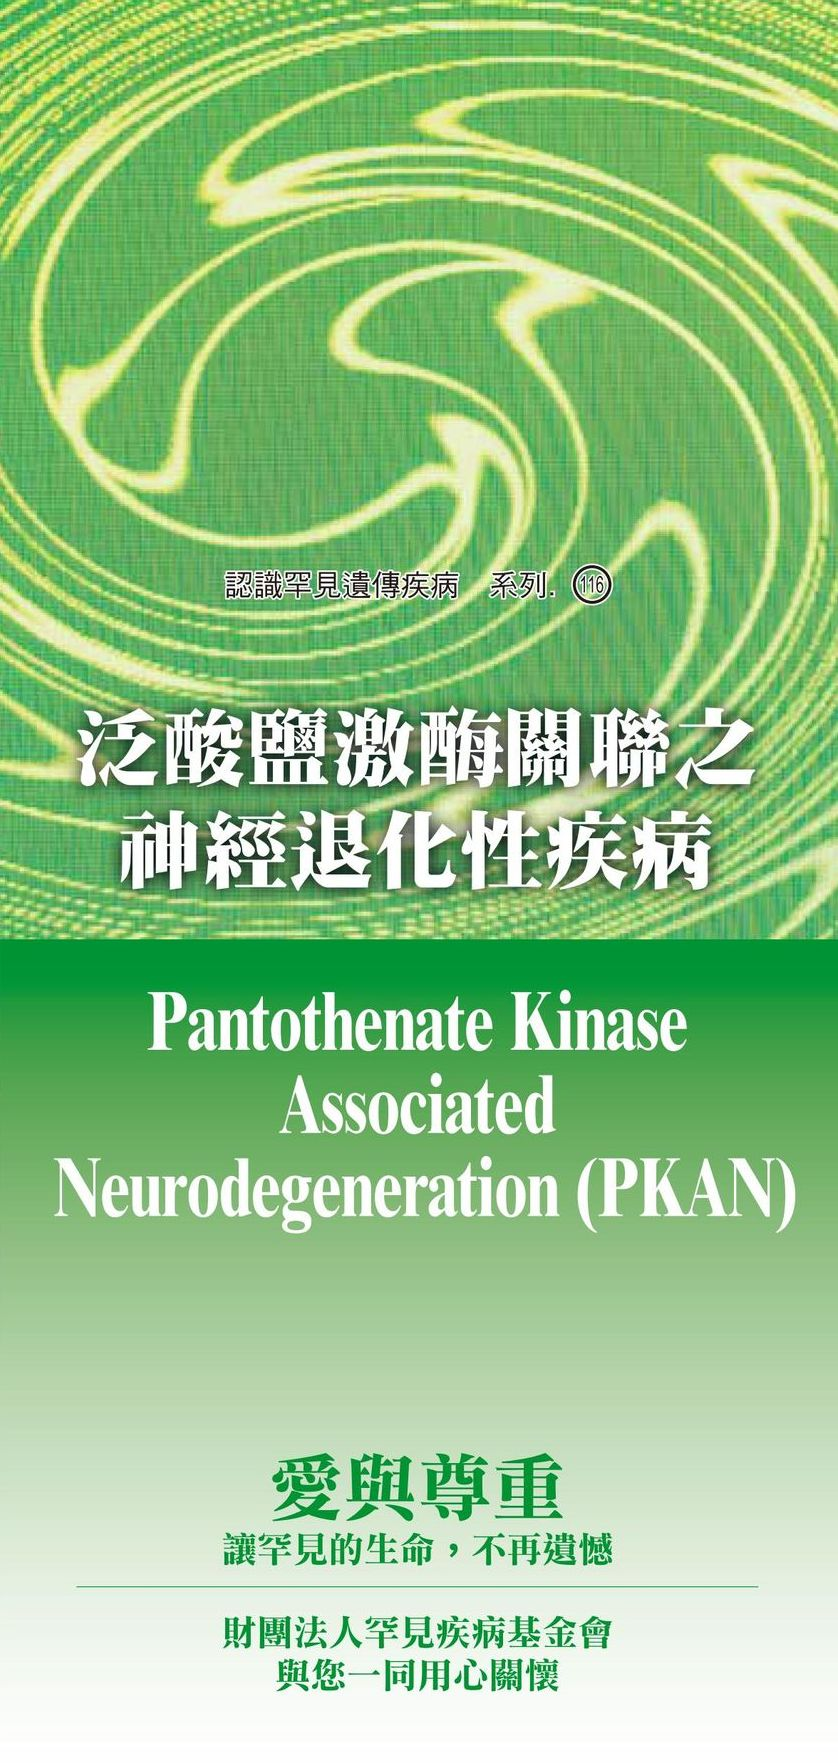 泛酸鹽激?關聯之神經退化性疾病  ( Pantothenate Kinase Associated Neurodegeneration )